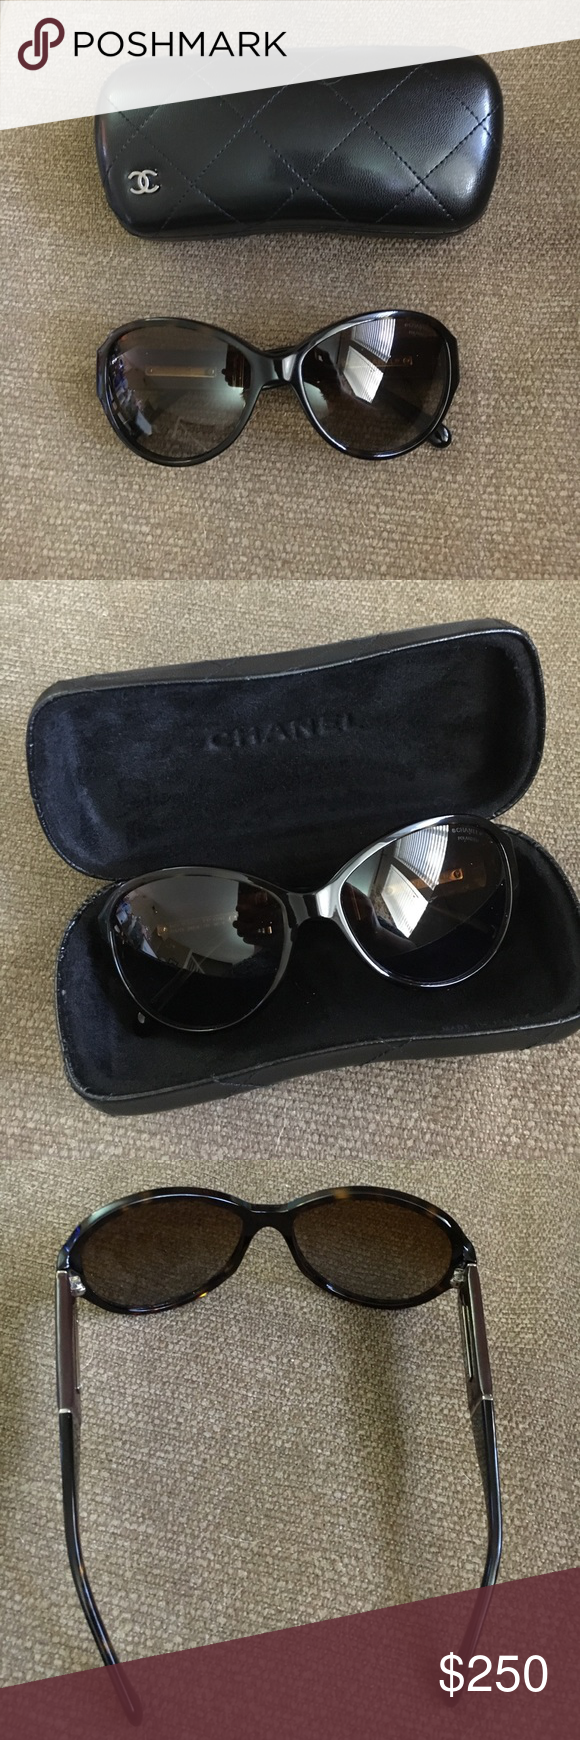 Chanel Sunglasses Tortoiseshell EUC Chanel 5229 large, round tortoiseshell sunglasses. Gradient lenses. Brown stems with White CC logo. In excellent used condition. No scratches on lenses. Case included. CHANEL Accessories Sunglasses